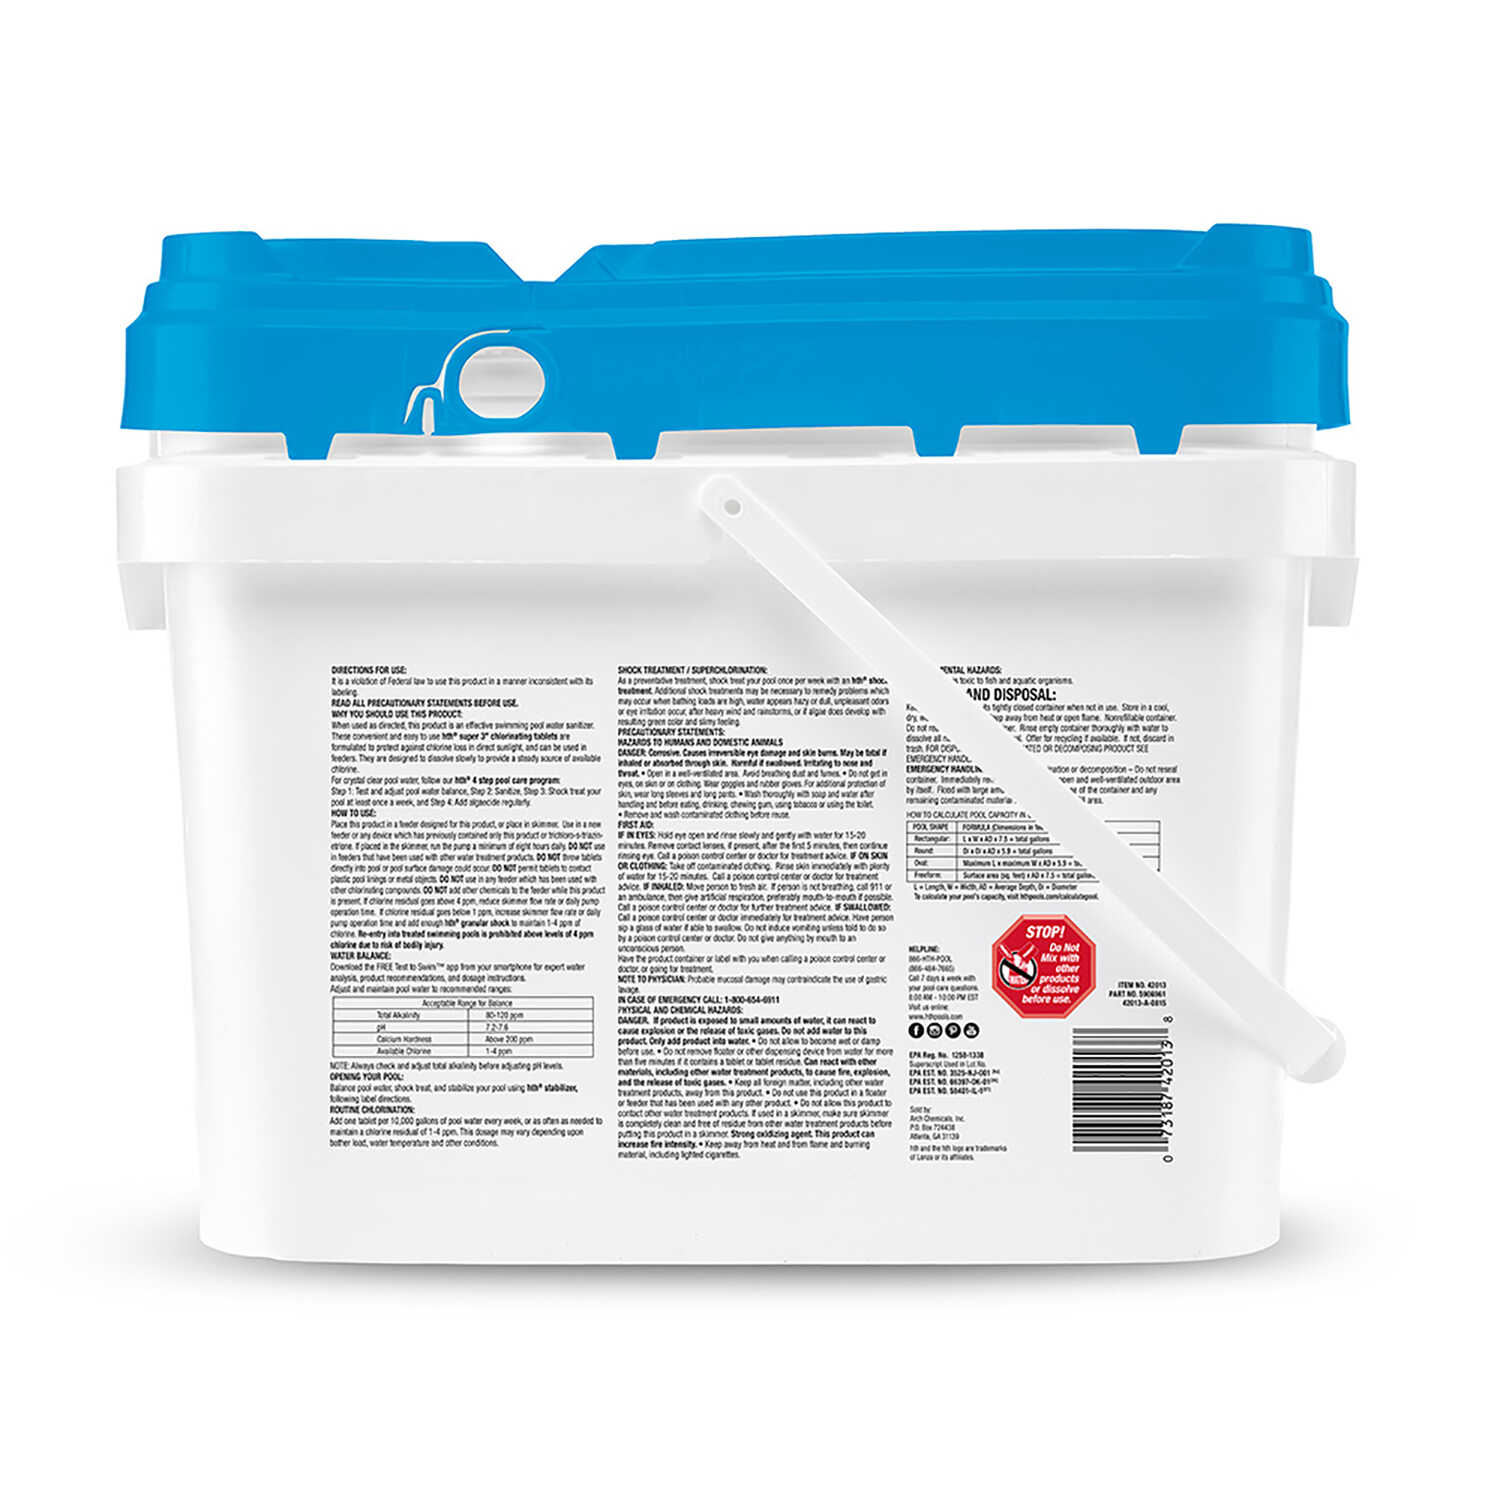 hth  Super  Tablet  Chlorinating Chemicals  25 lb.